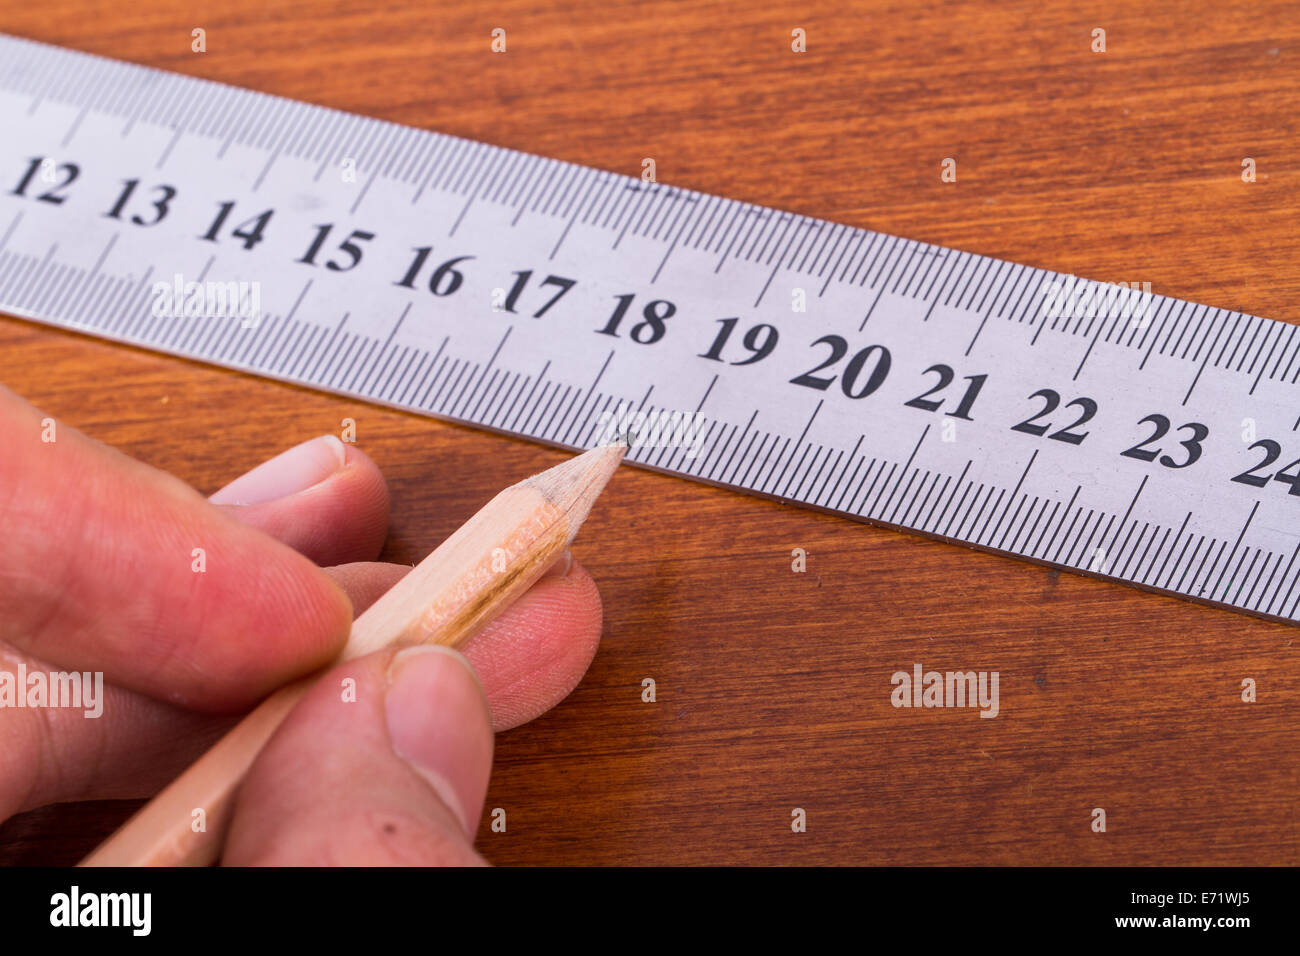 Macro view of hand holding wood pencil and steel ruler for engineering drawing on wooden table. - Stock Image